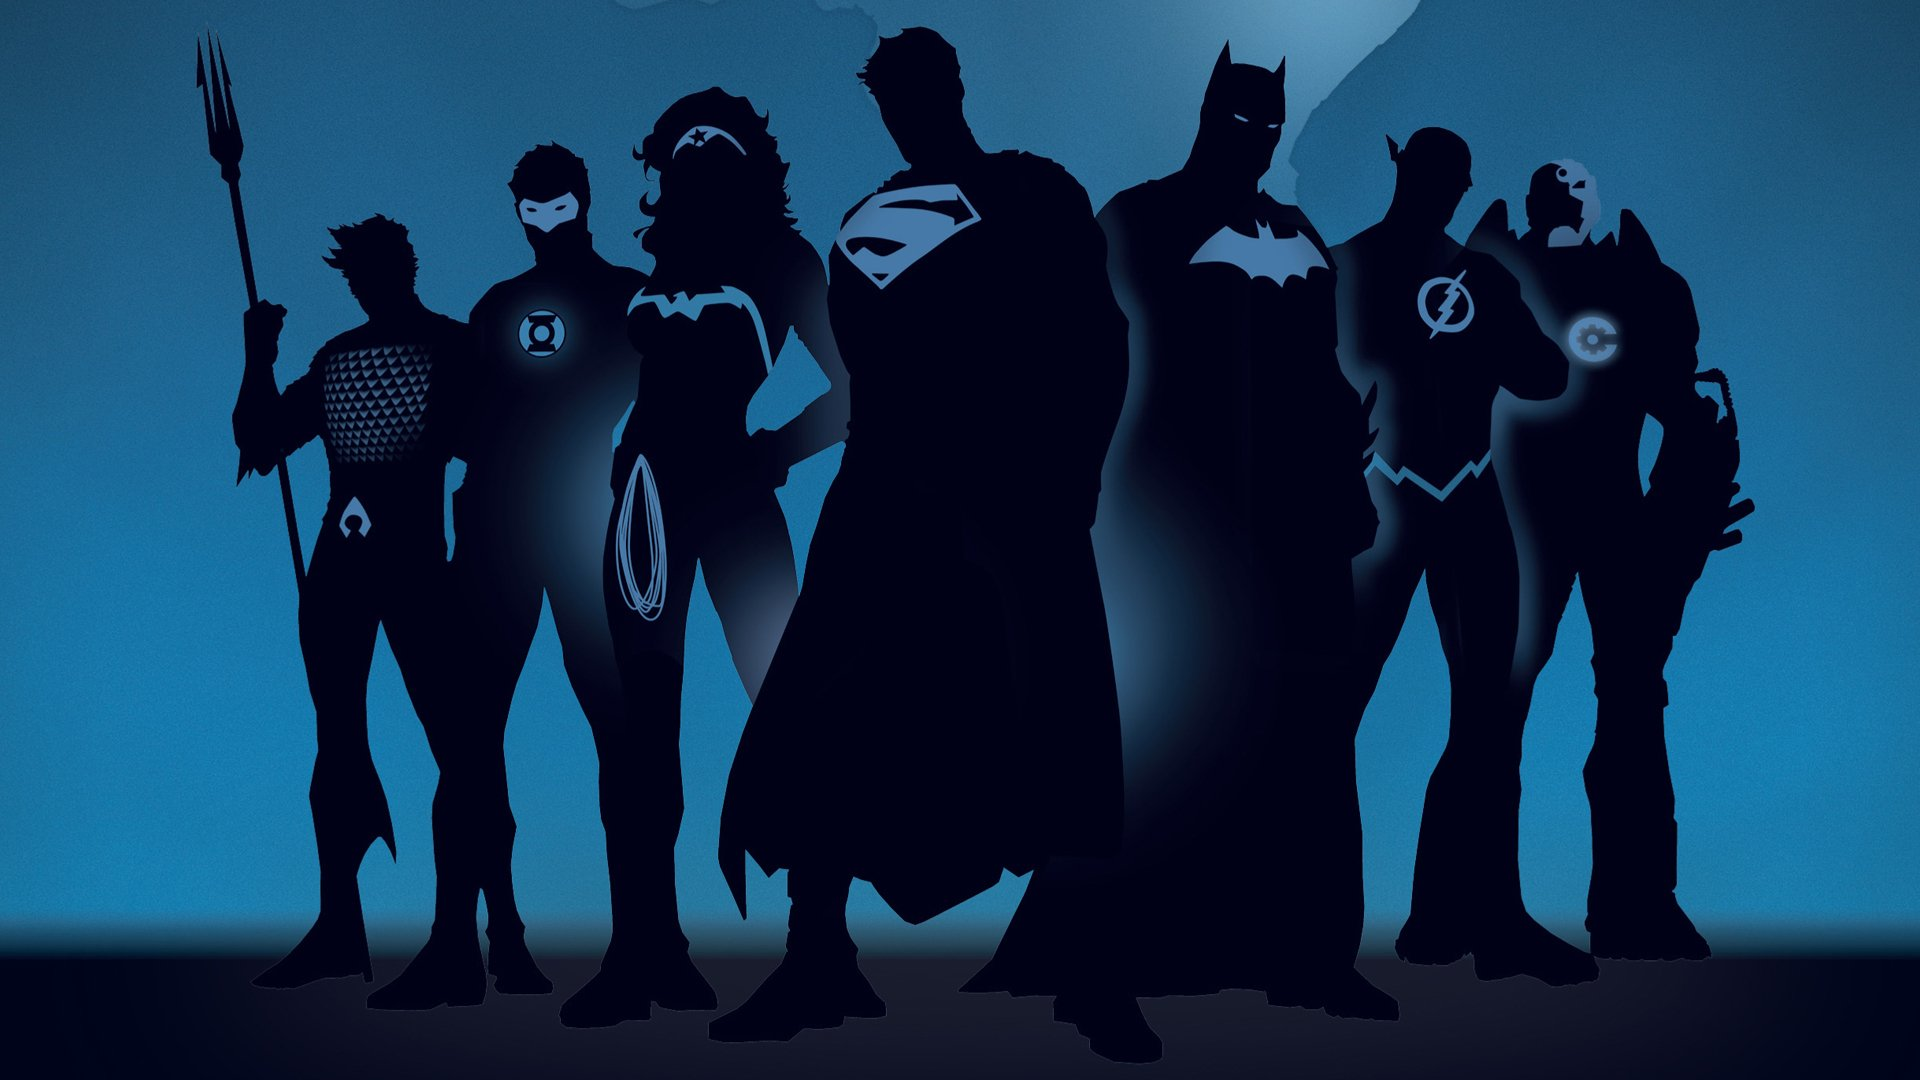 Hd wallpaper justice league - Hd Wallpaper Background Id 241901 1920x1080 Comics Justice League